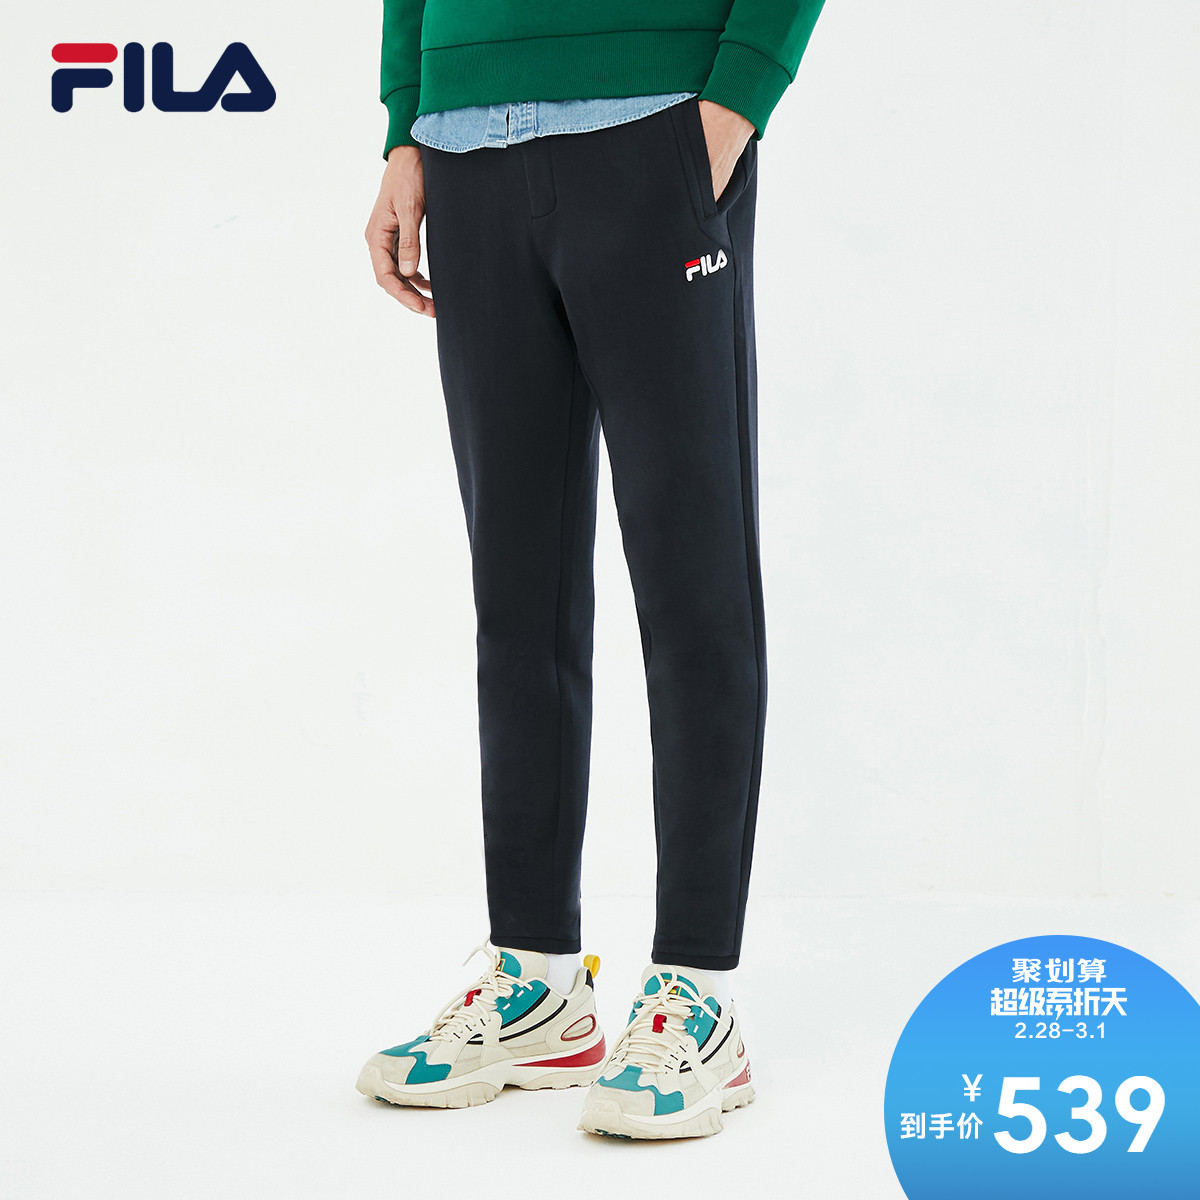 FILA Philharmonic official men's knitting pants spring 2020 new casual pants straight sports pants men's pants